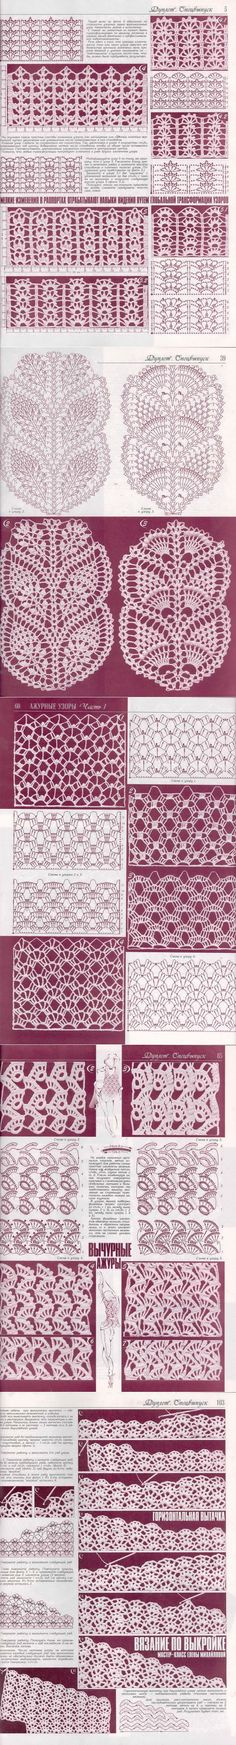 Knitting and Crochet Patterns for your designs. They will help you with crochet scheme. Crochet Stitches Chart, Crochet Motifs, Crochet Borders, Crochet Diagram, Thread Crochet, Love Crochet, Filet Crochet, Knitting Stitches, Crochet Doilies